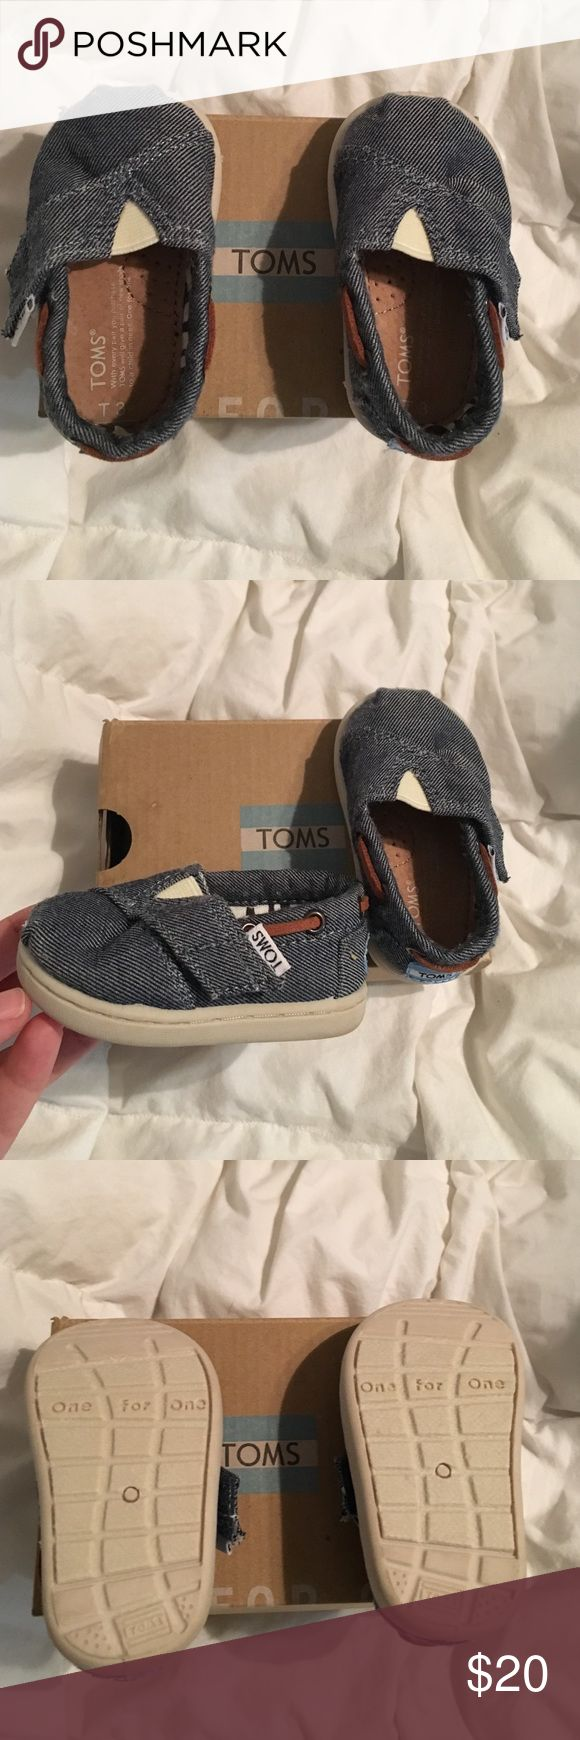 NWOT Baby toms NWOT tiny toms. Chambray material. I had bought for my daughter on Poshmark but they don't fit her 😬 the soles of the shoes look a little off in color in the pictures. I bought these brand new and only tried them on my daughter. In great condition. I'd like to get what I paid and not make anything off of them. TOMS Shoes Baby & Walker